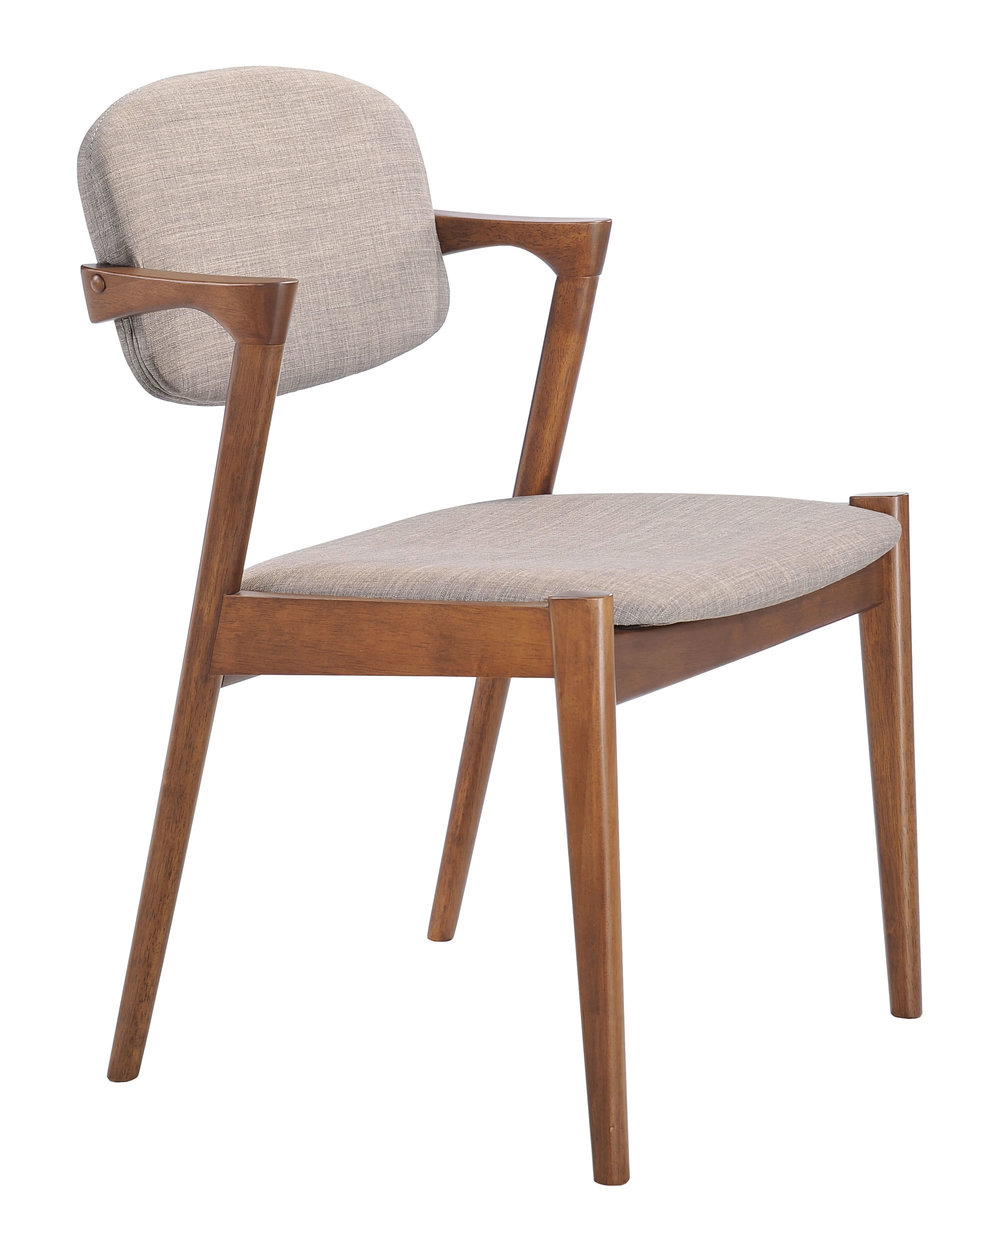 Zuo Modern Contemporary - Brickell Dining Chair - Set of 2 - Gray